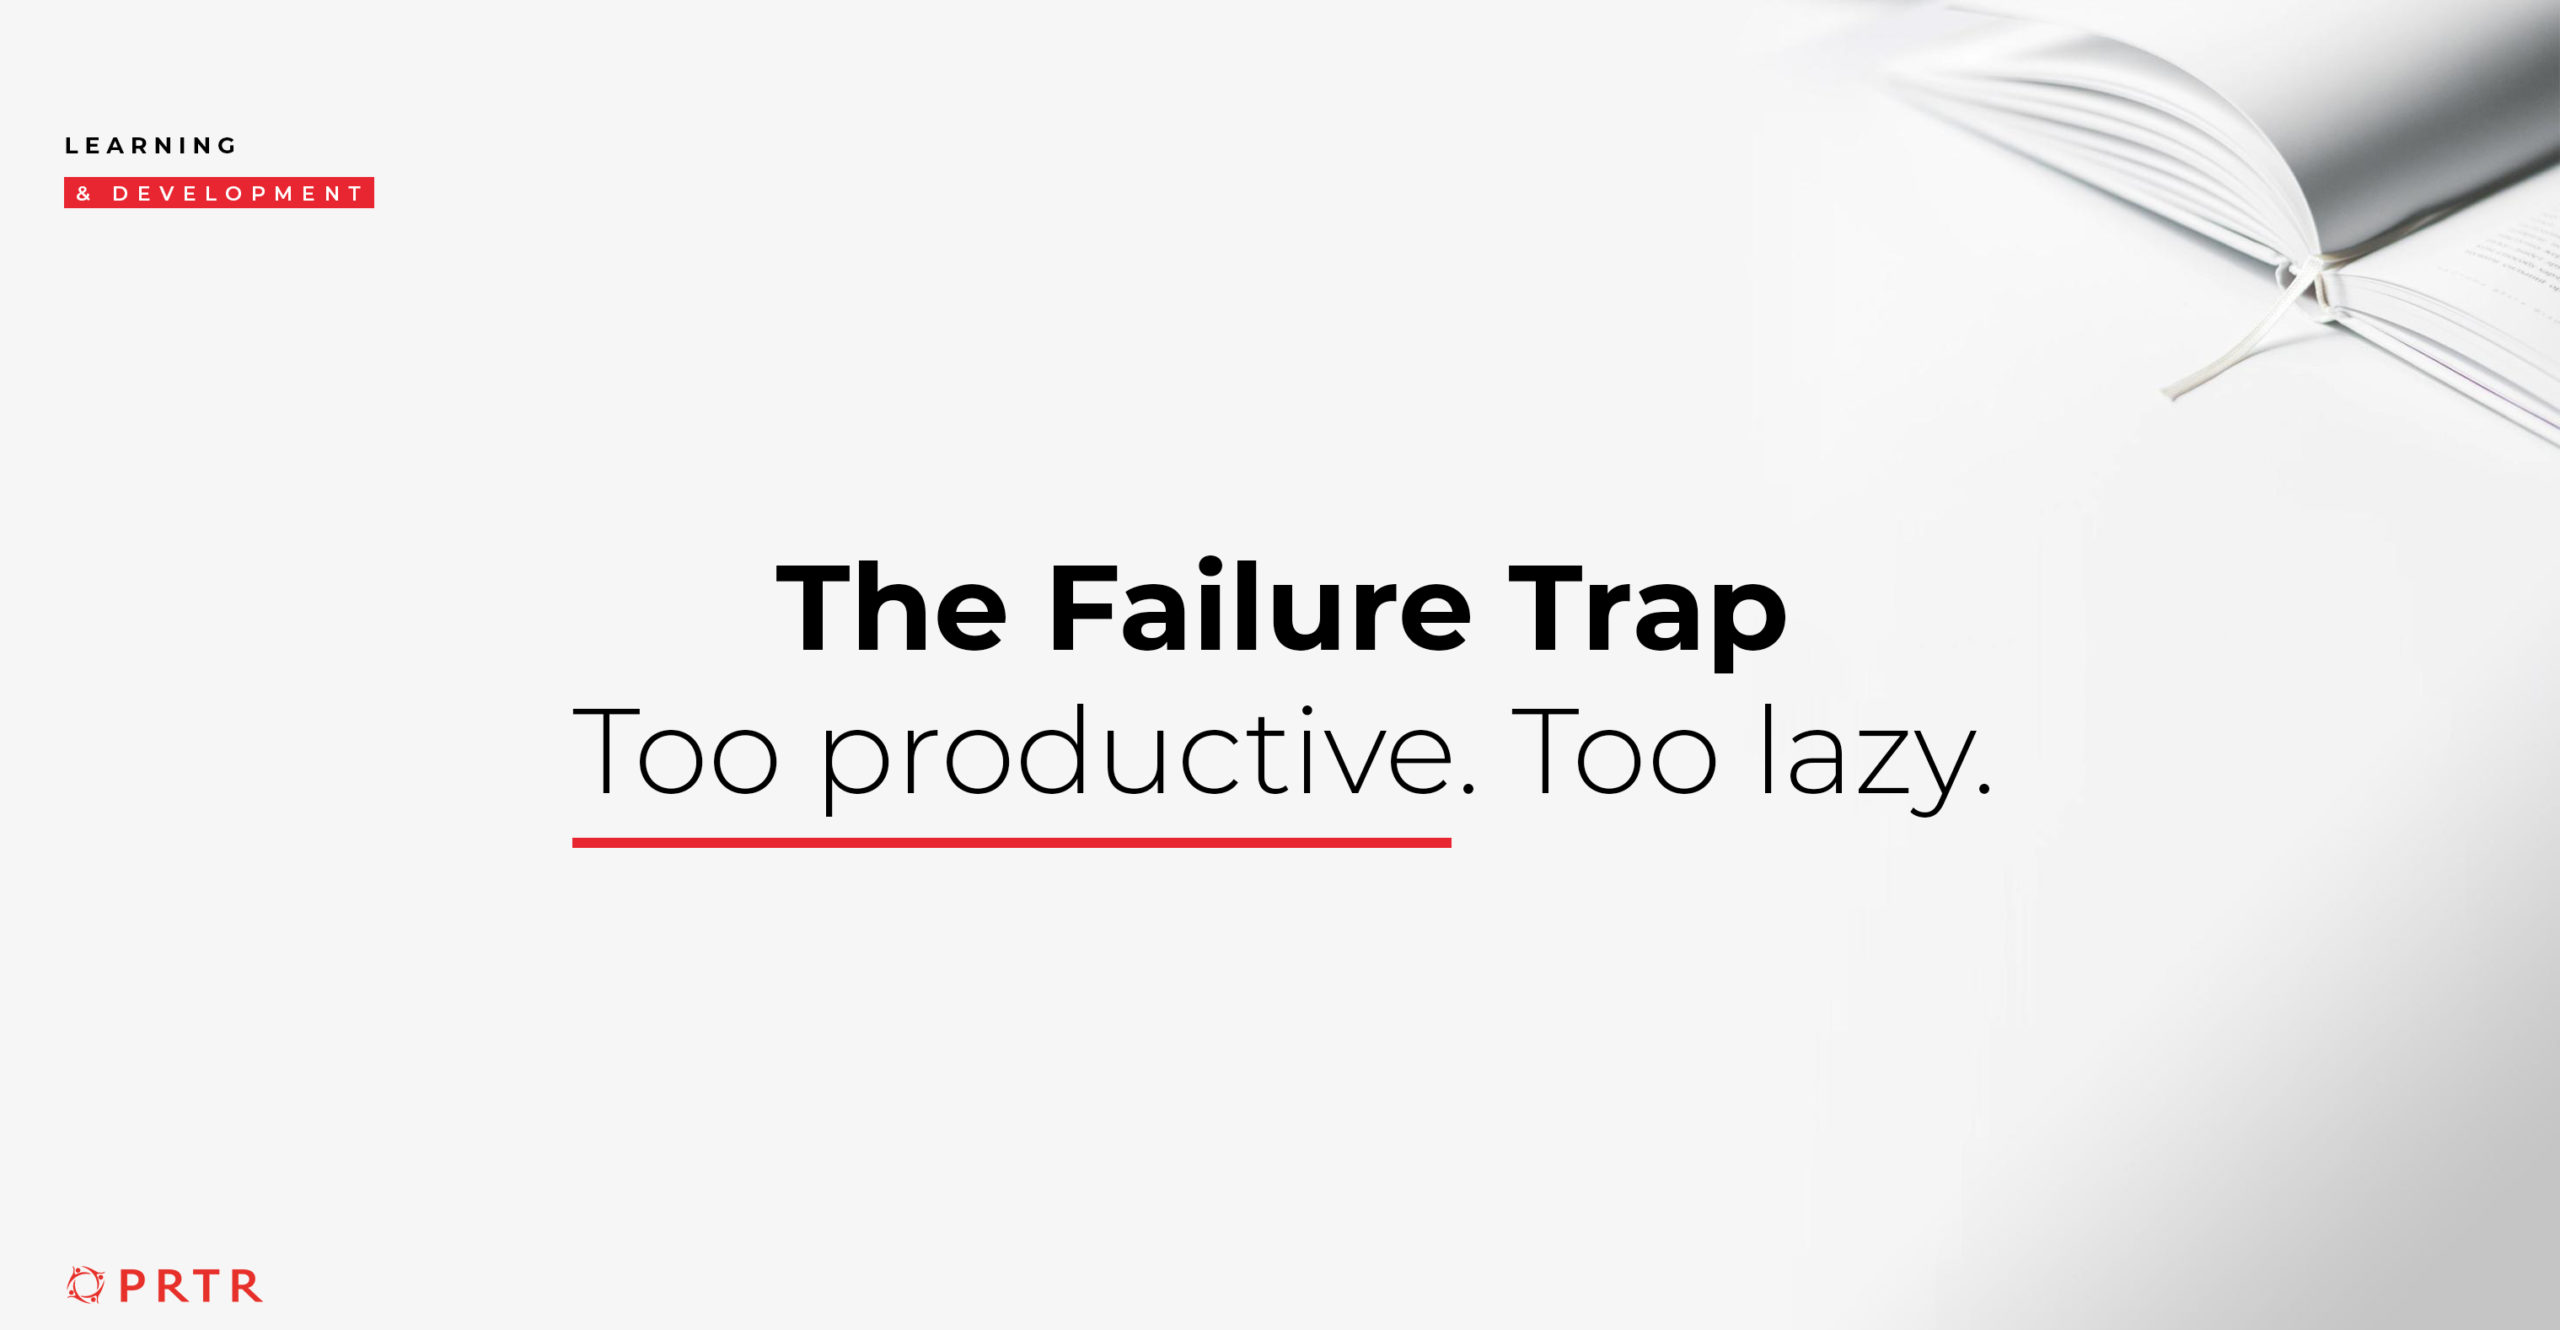 The Failure Trap